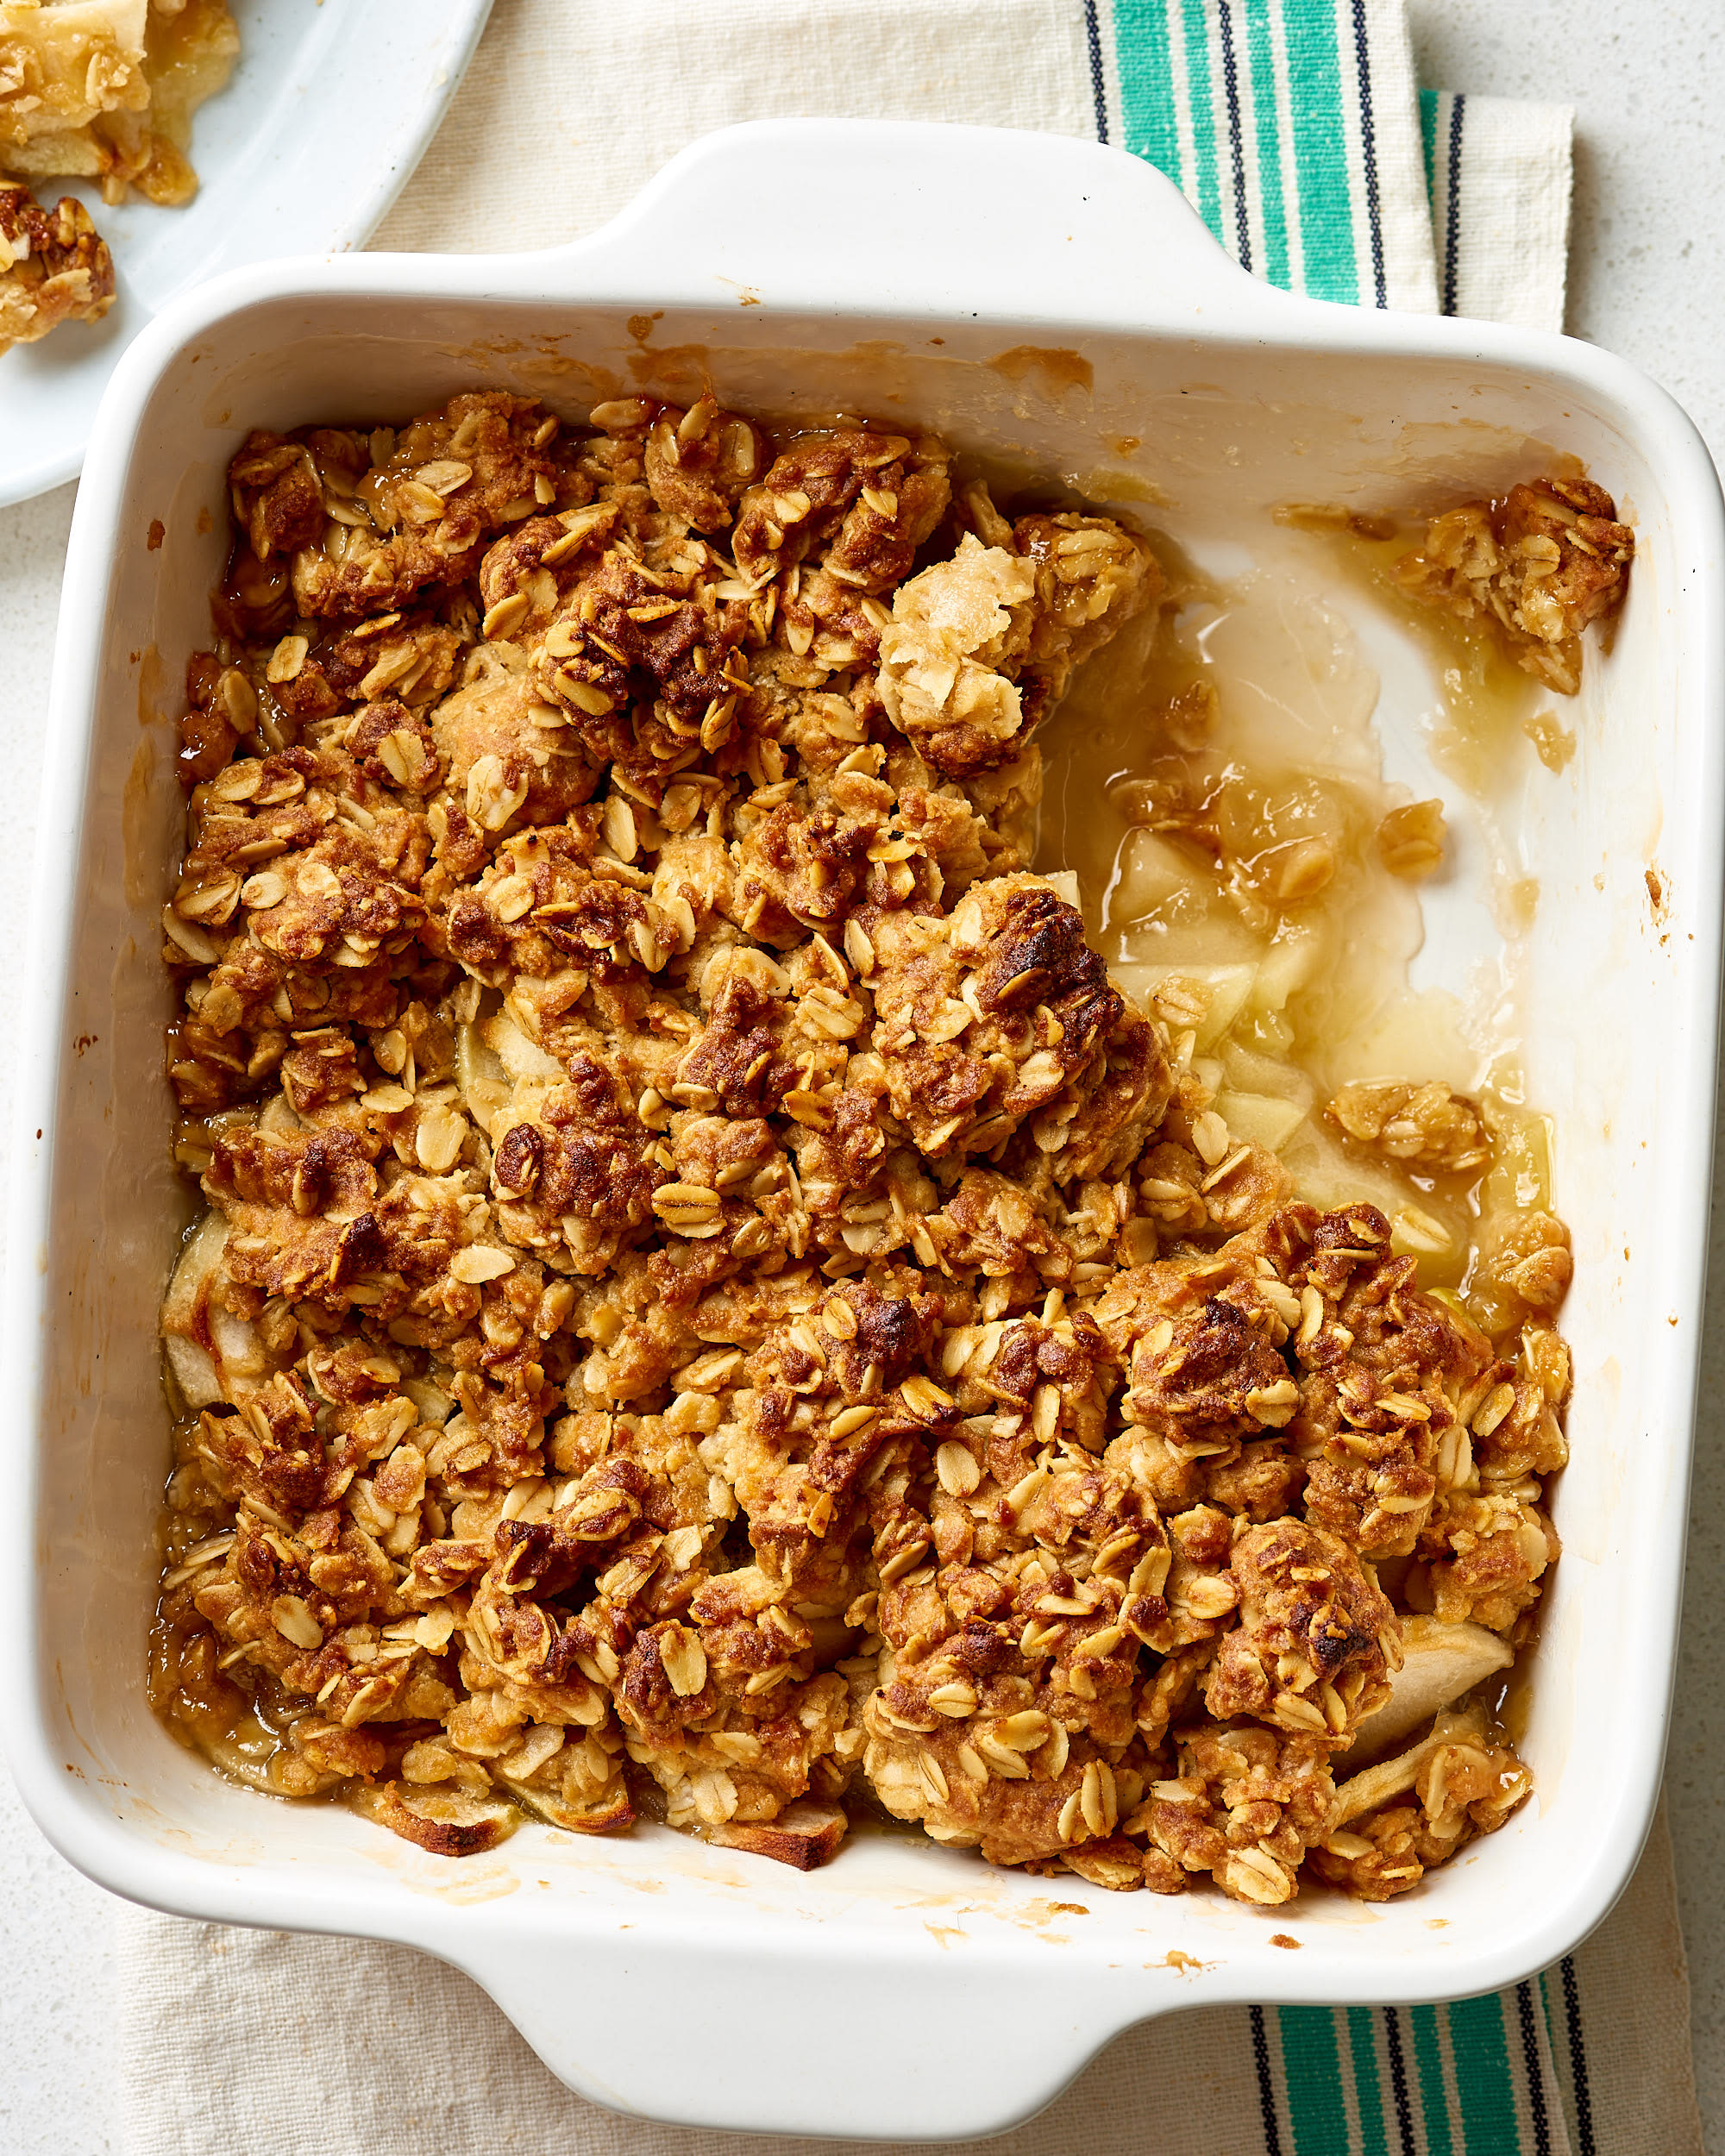 How To Make Easy Apple Crisp